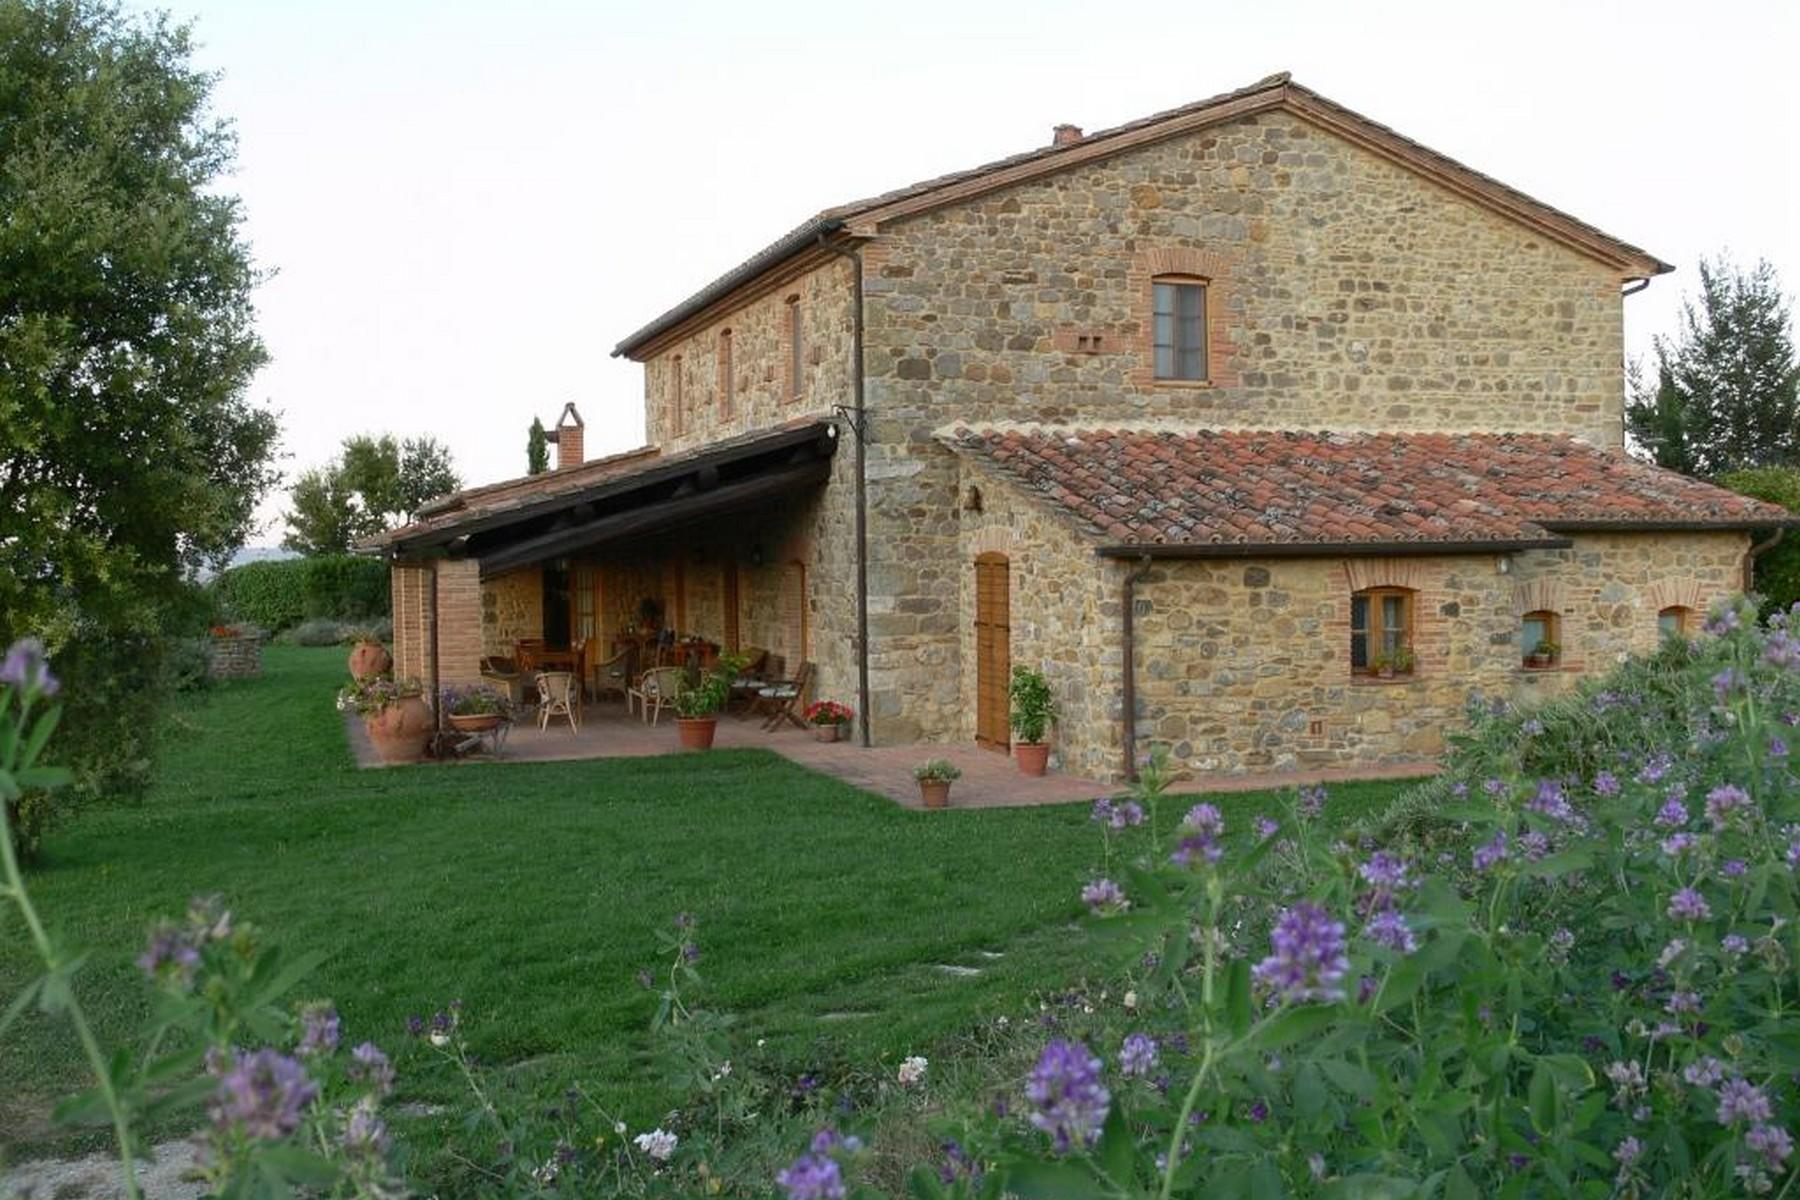 Enchanting farmhouse in Umbrian countryside - 3